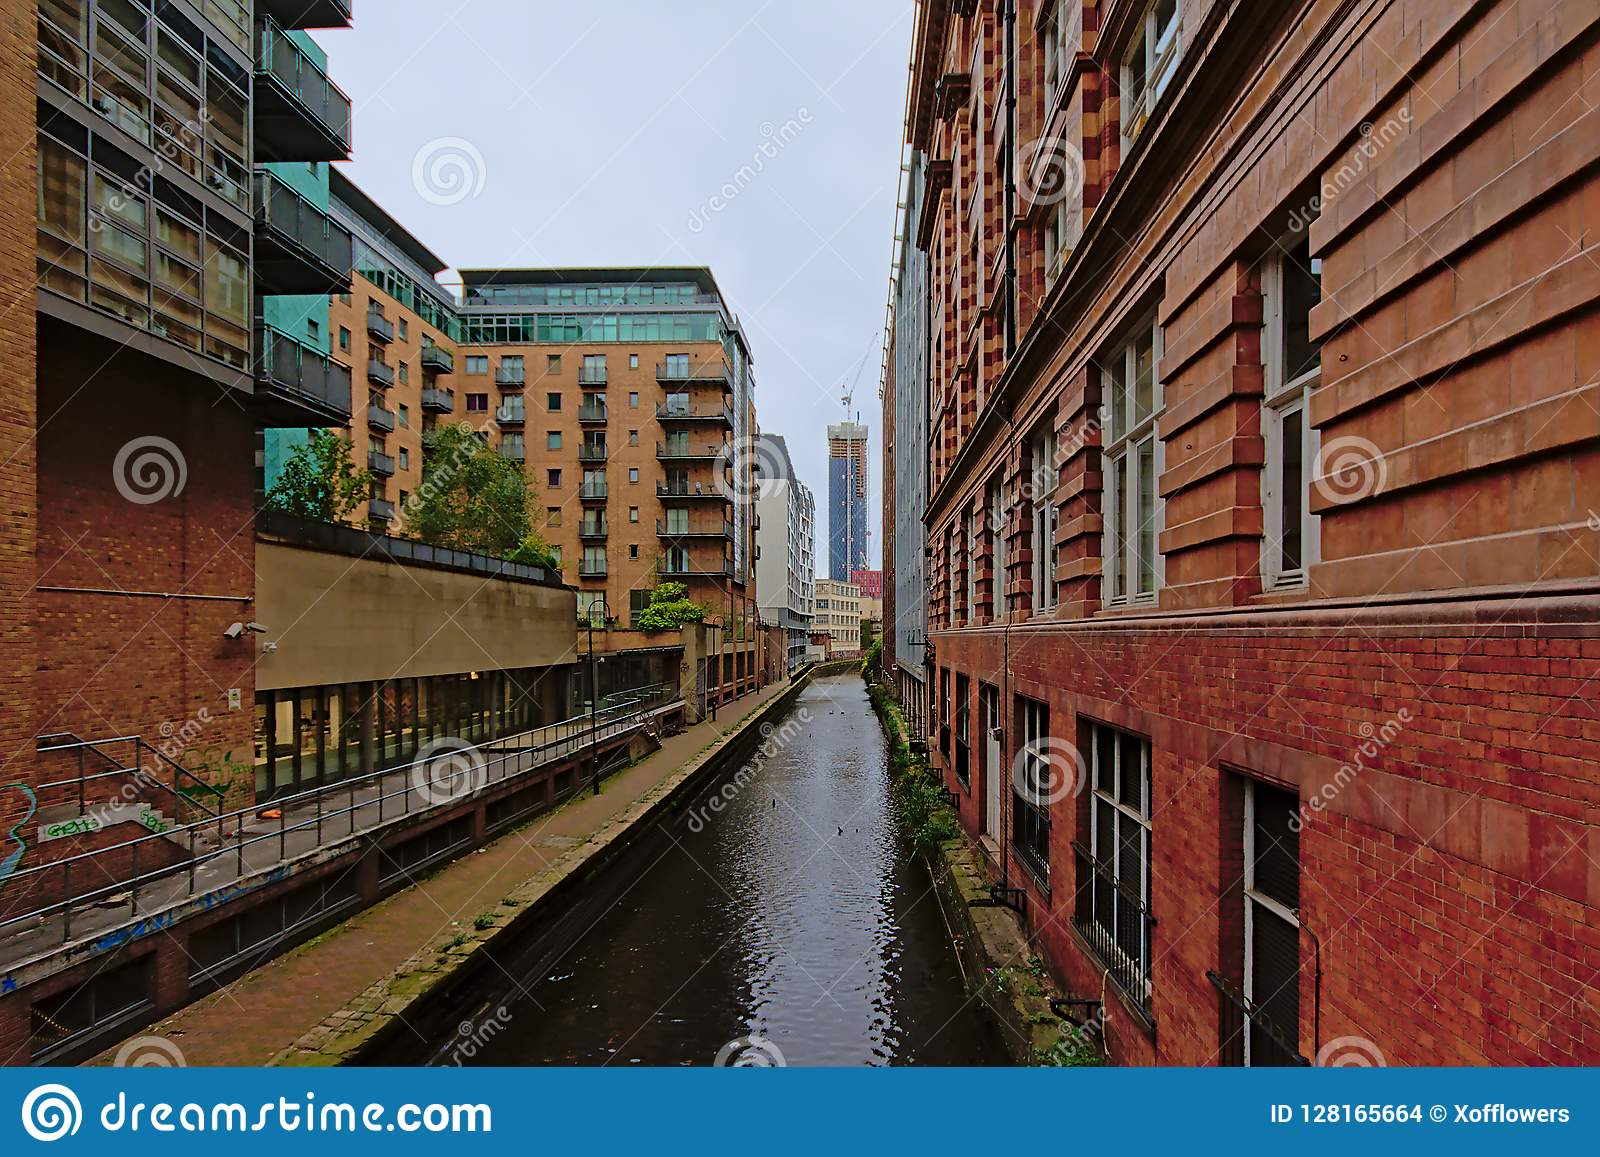 Warehouses and apartment buildings along a canal in Manchester